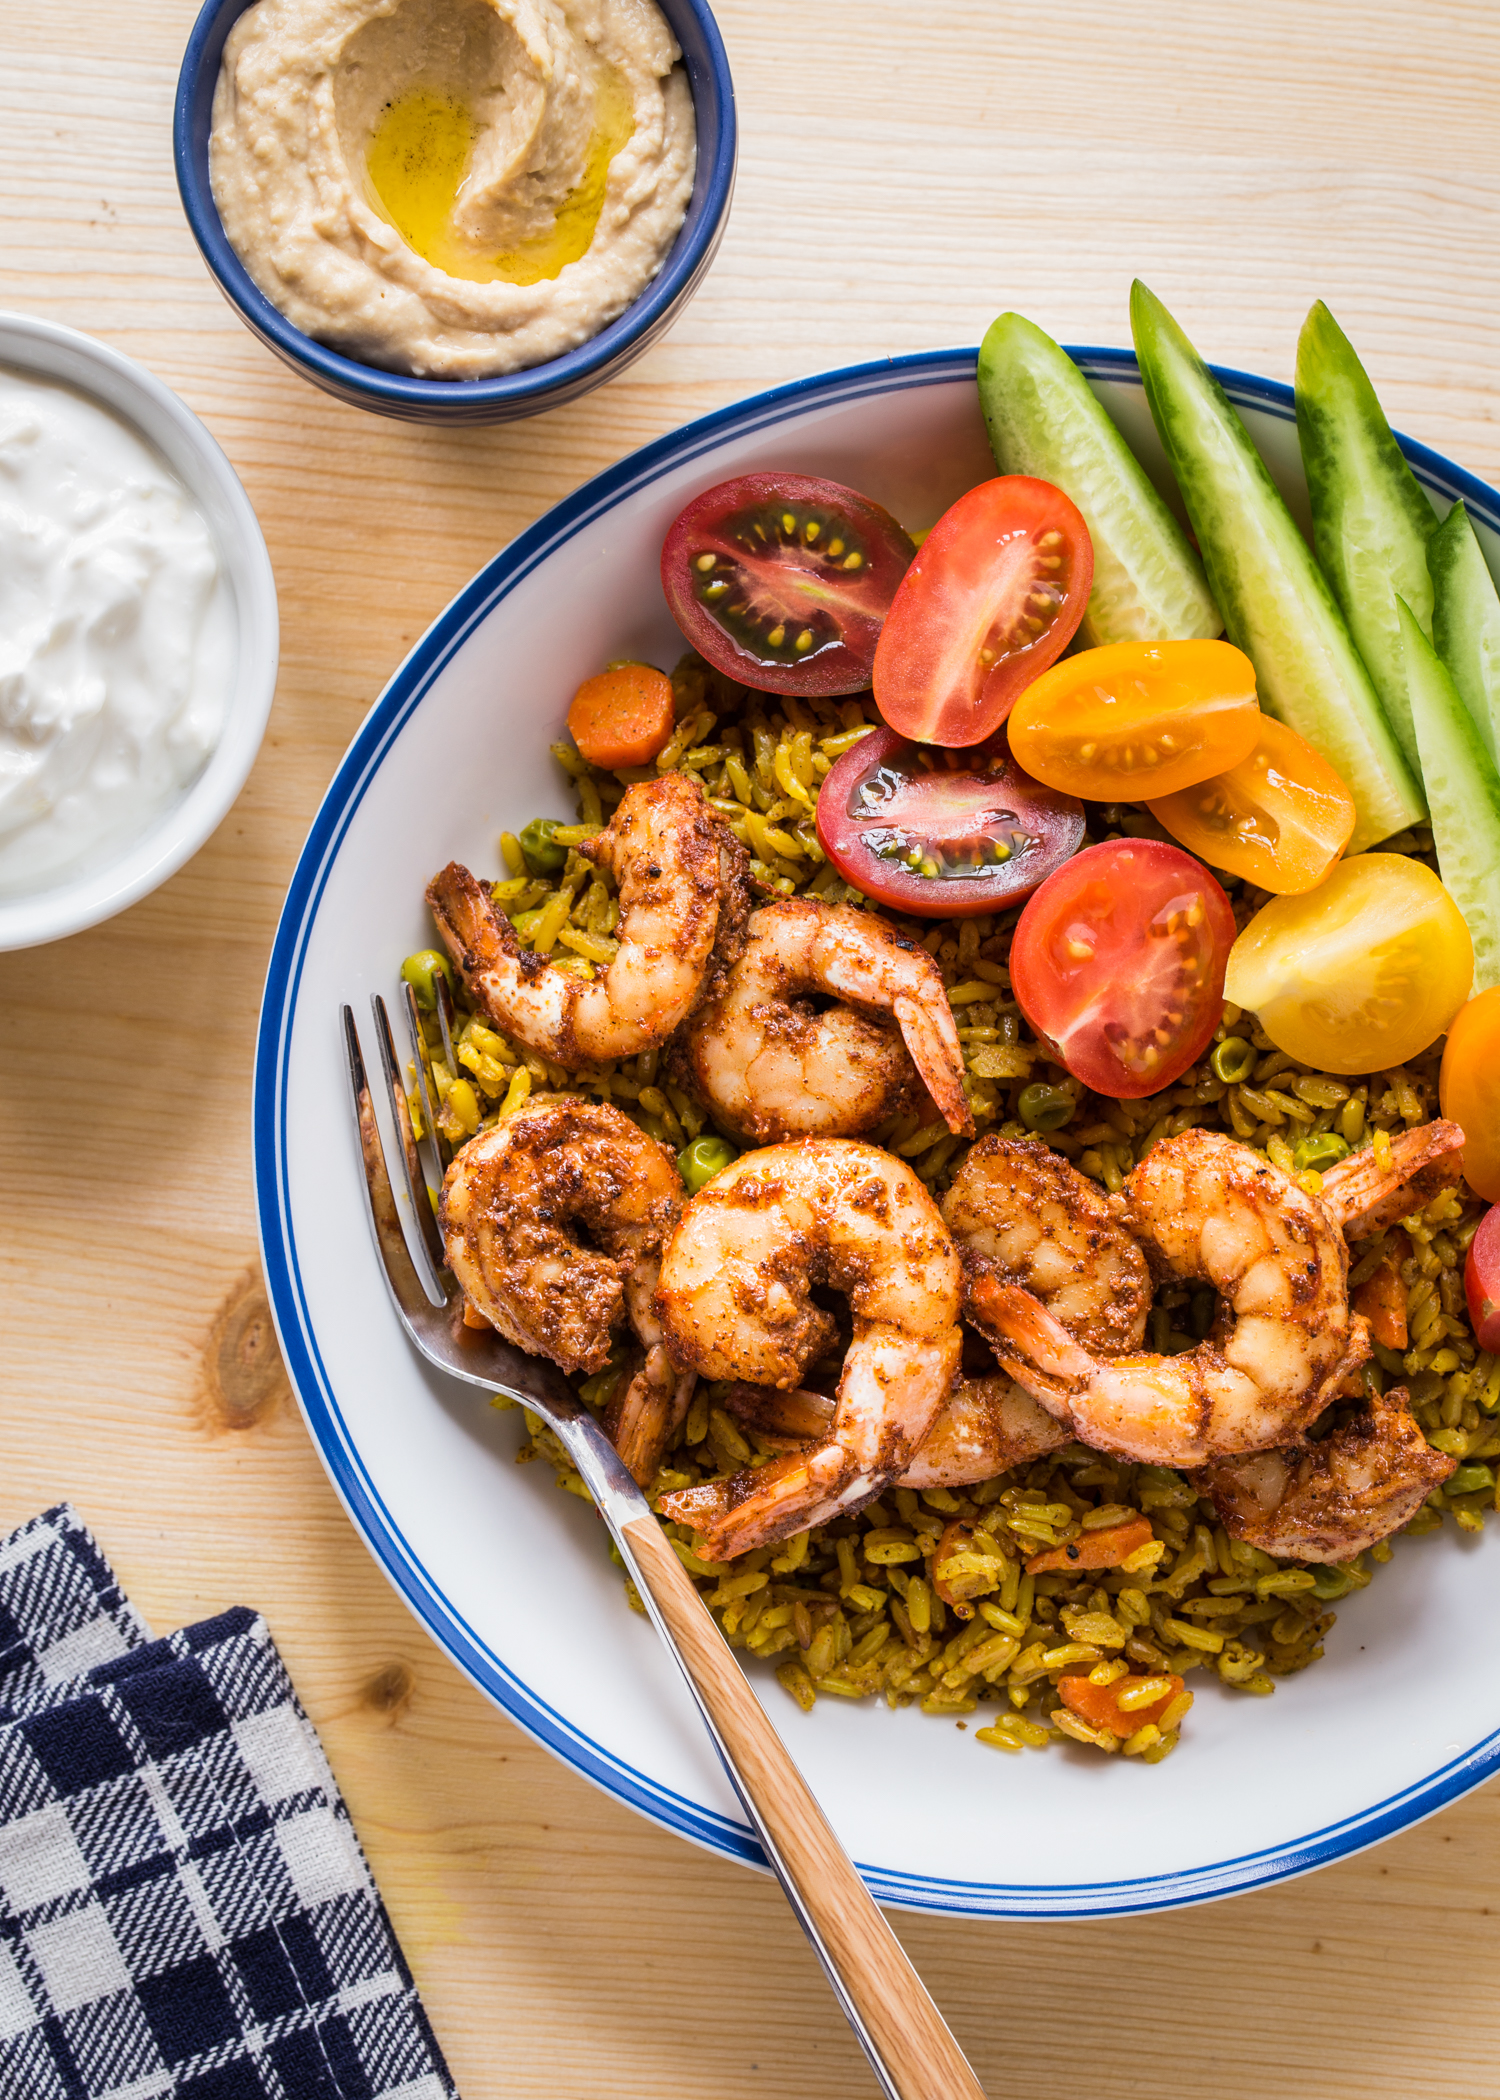 Spicy shrimp made with homemade Shawarma Seasoning are the star of these Shrimp Shawarma Bowls